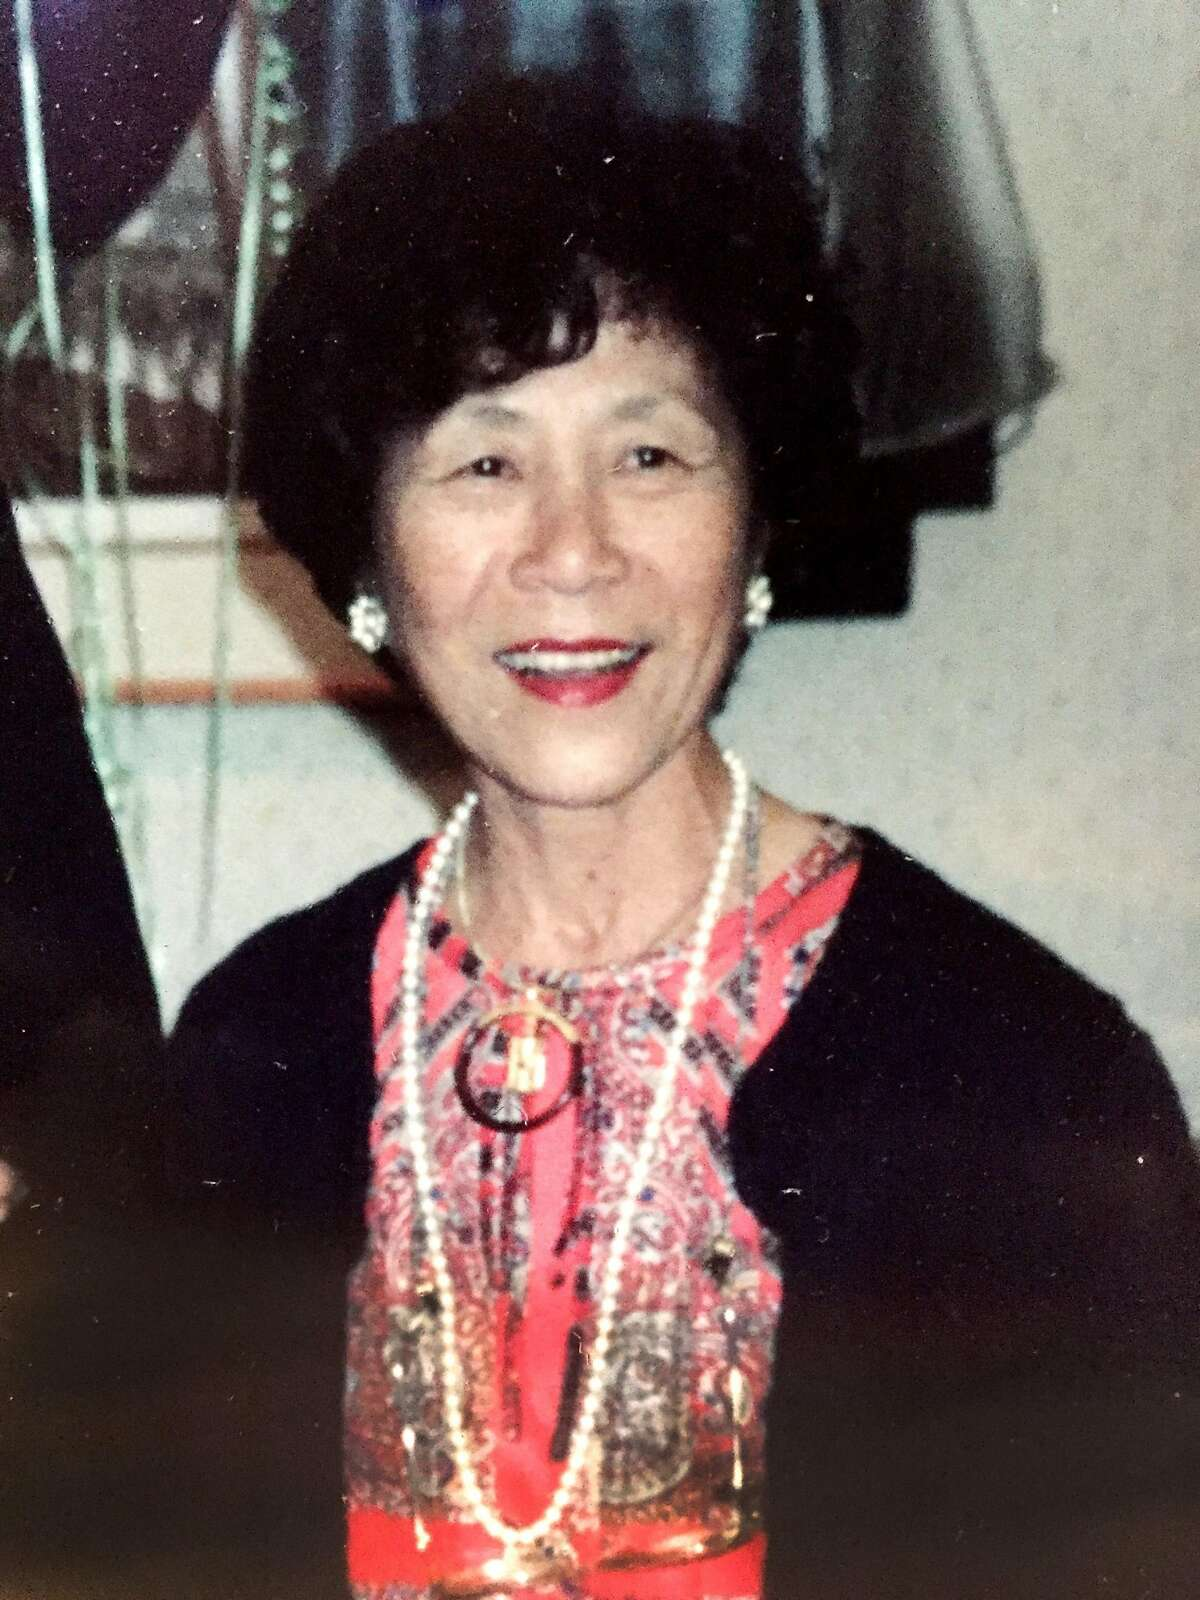 Helen Wong Lum passed away on Tuesday, Dec. 22, 2015. She is survived by her husband, Charlie Lum, and her sister, Violet Yip.